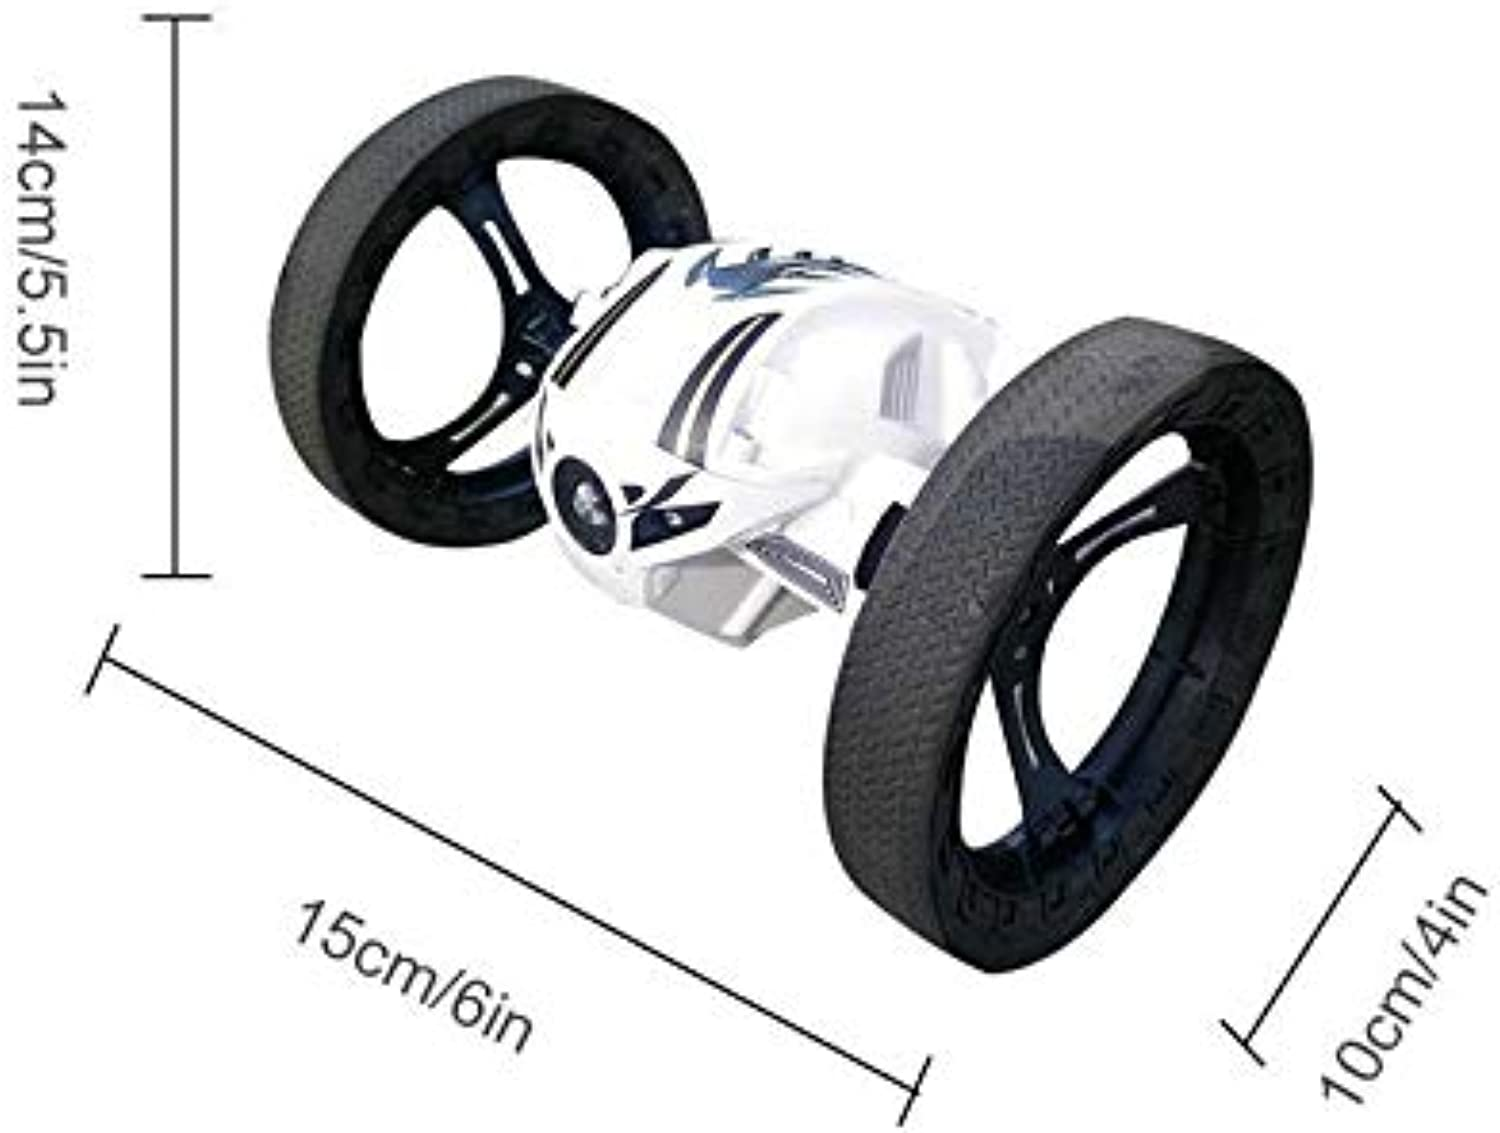 Generic 2.4G Control Stunt Bounce Vehicle Two Wheel redating Tipper CrossCountry Stunt Car Resistance to Fall High Jump Toys Vehicle White